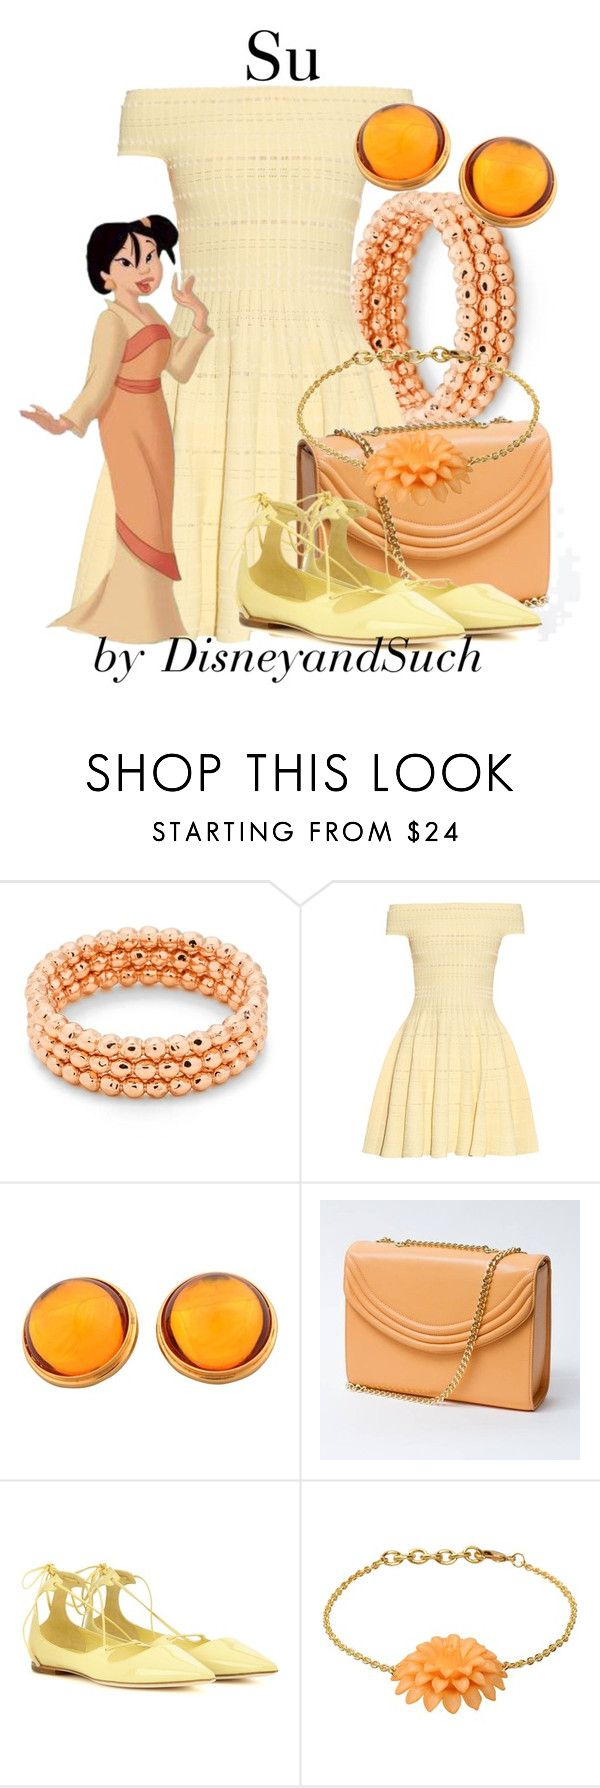 """Su"" by disneyandsuch ❤ liked on Polyvore featuring Gorjana, Alexander McQueen, Lauren Cecchi, Jimmy Choo, George J. Love, disney, disneybound, mulan and WhereIsMySuperSuit"